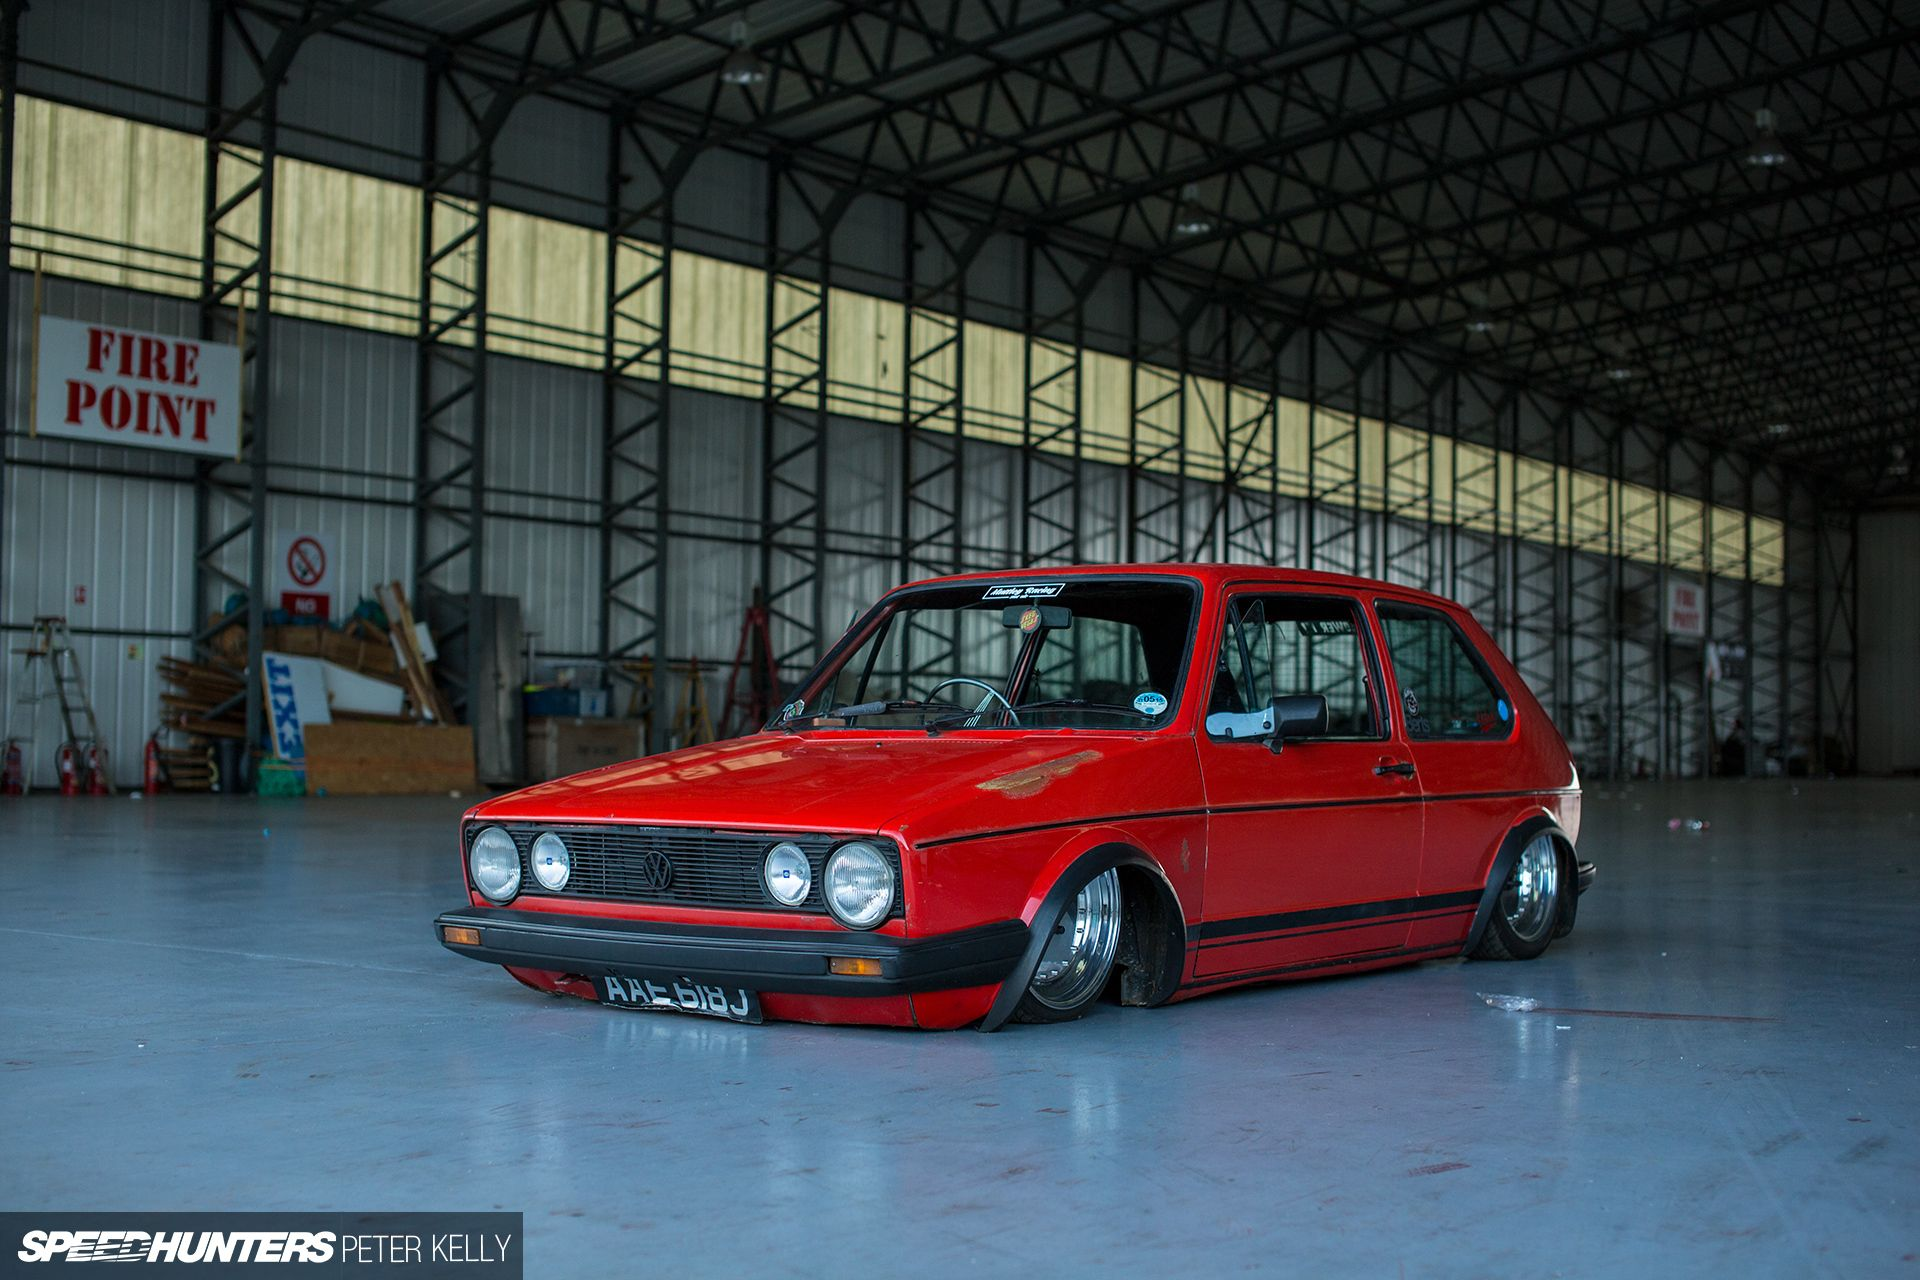 Pipey Kicked Off His Project Back In Early 2012 After Finding This GTI  Body, Which